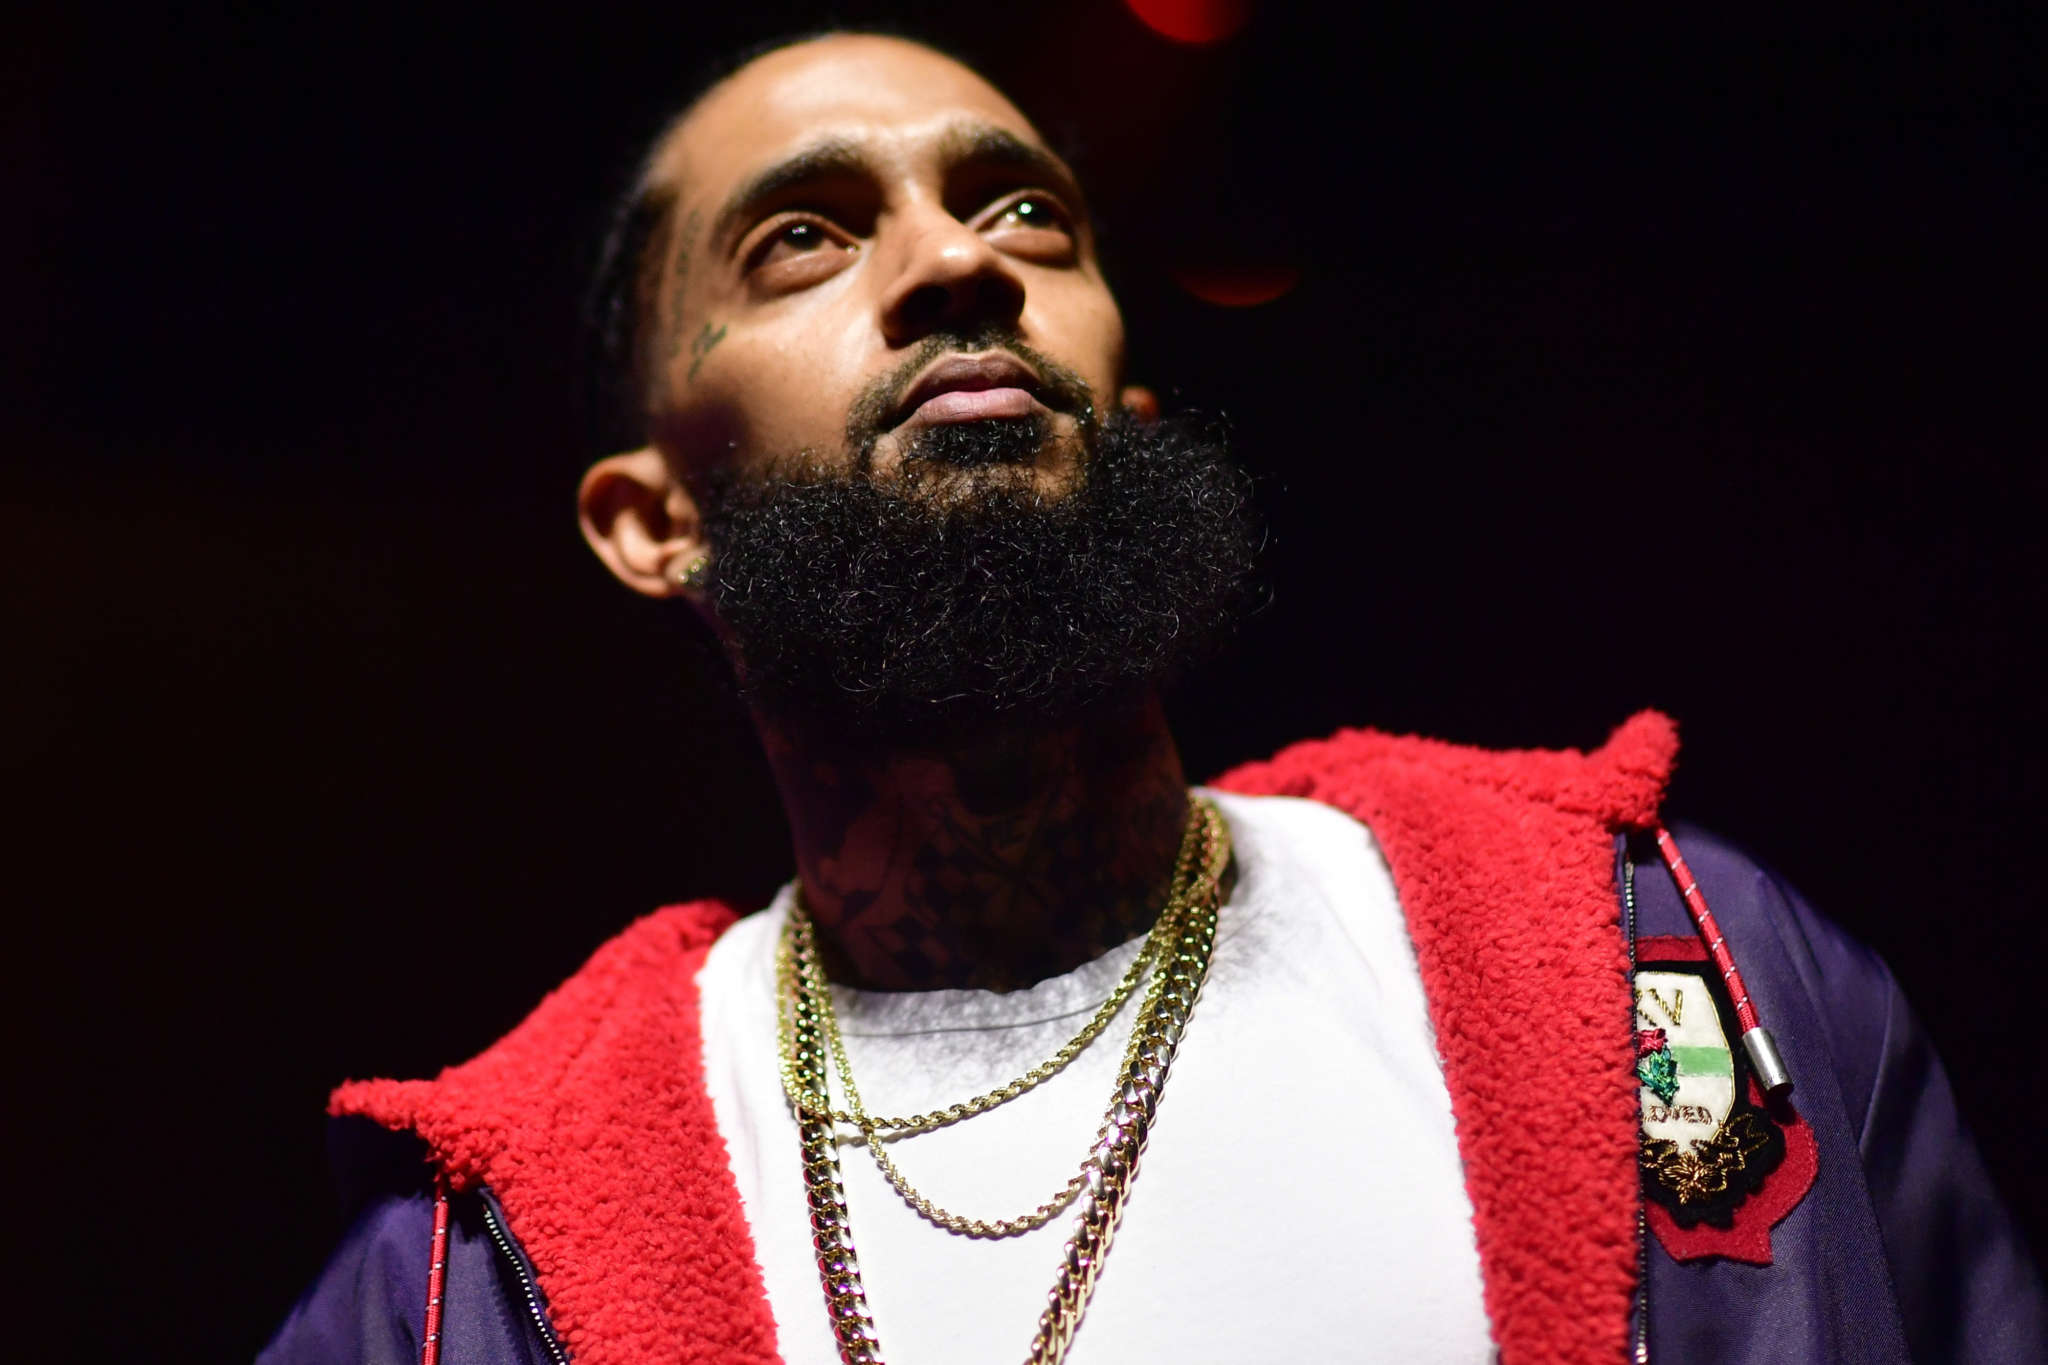 Nipsey Hussle's Company Marathon Films Says They Are In Negotiations With Netflix For A Documentary